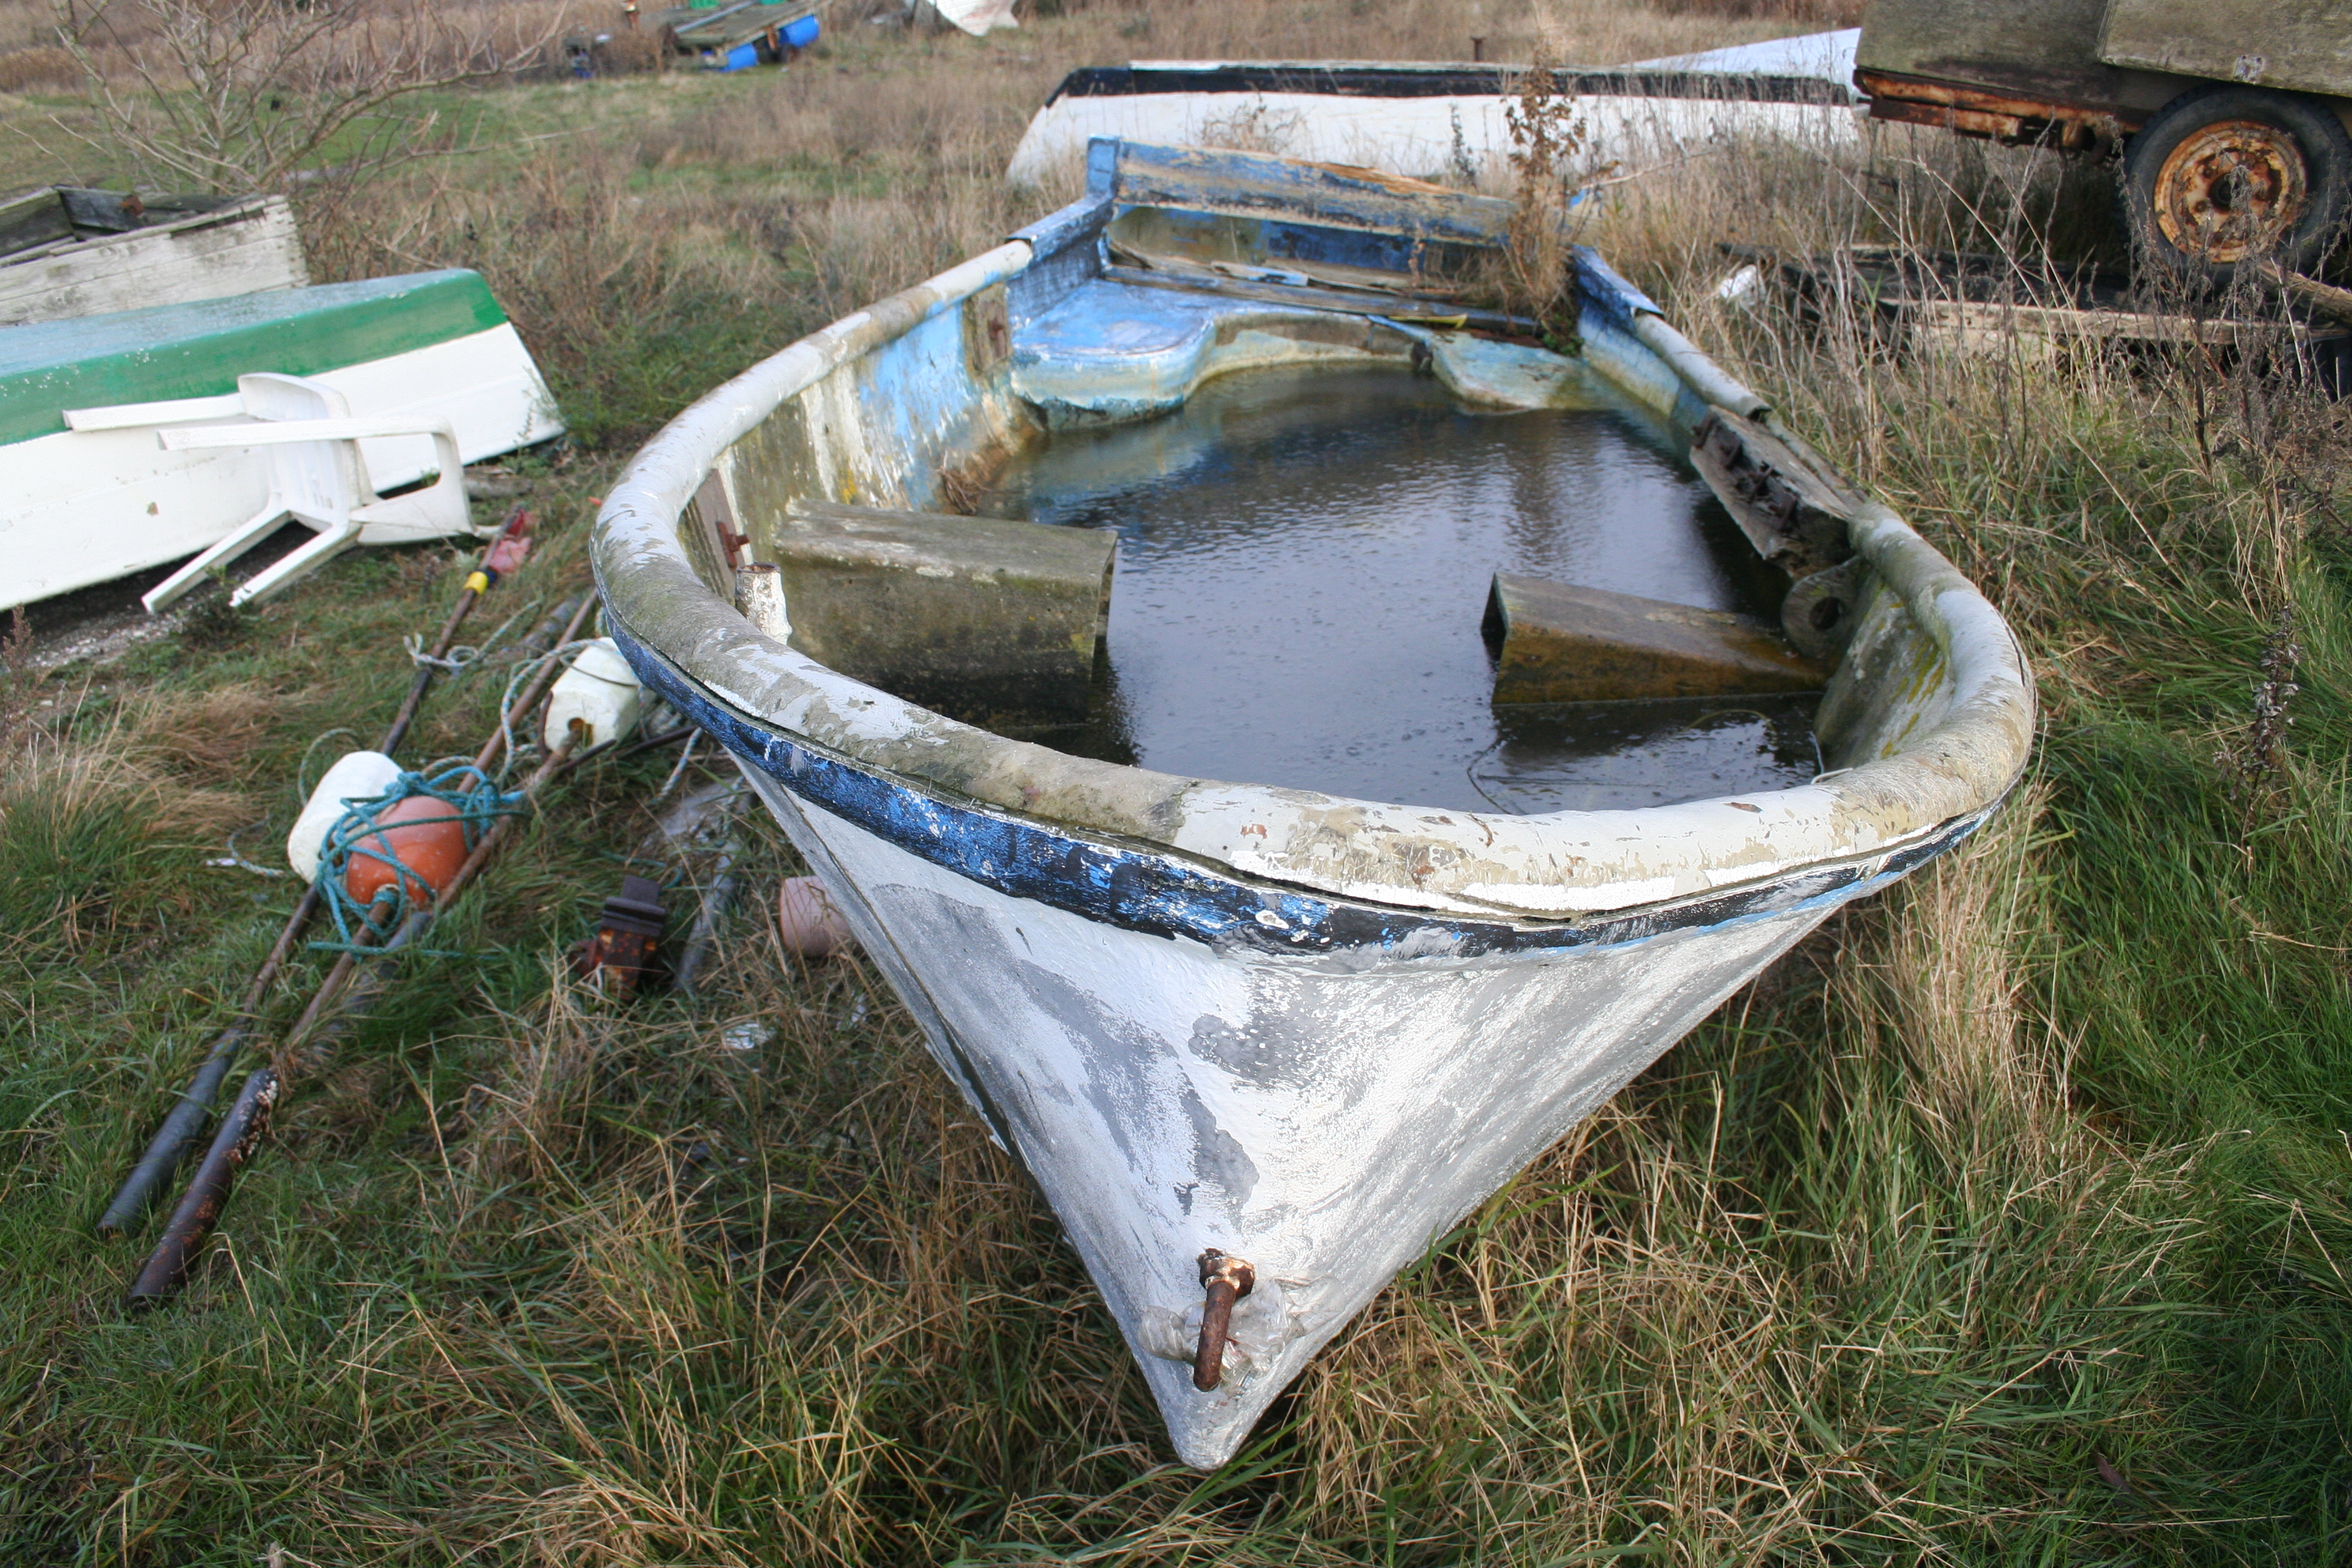 Old boat, Boat, Old, Ruined, Sail, HQ Photo